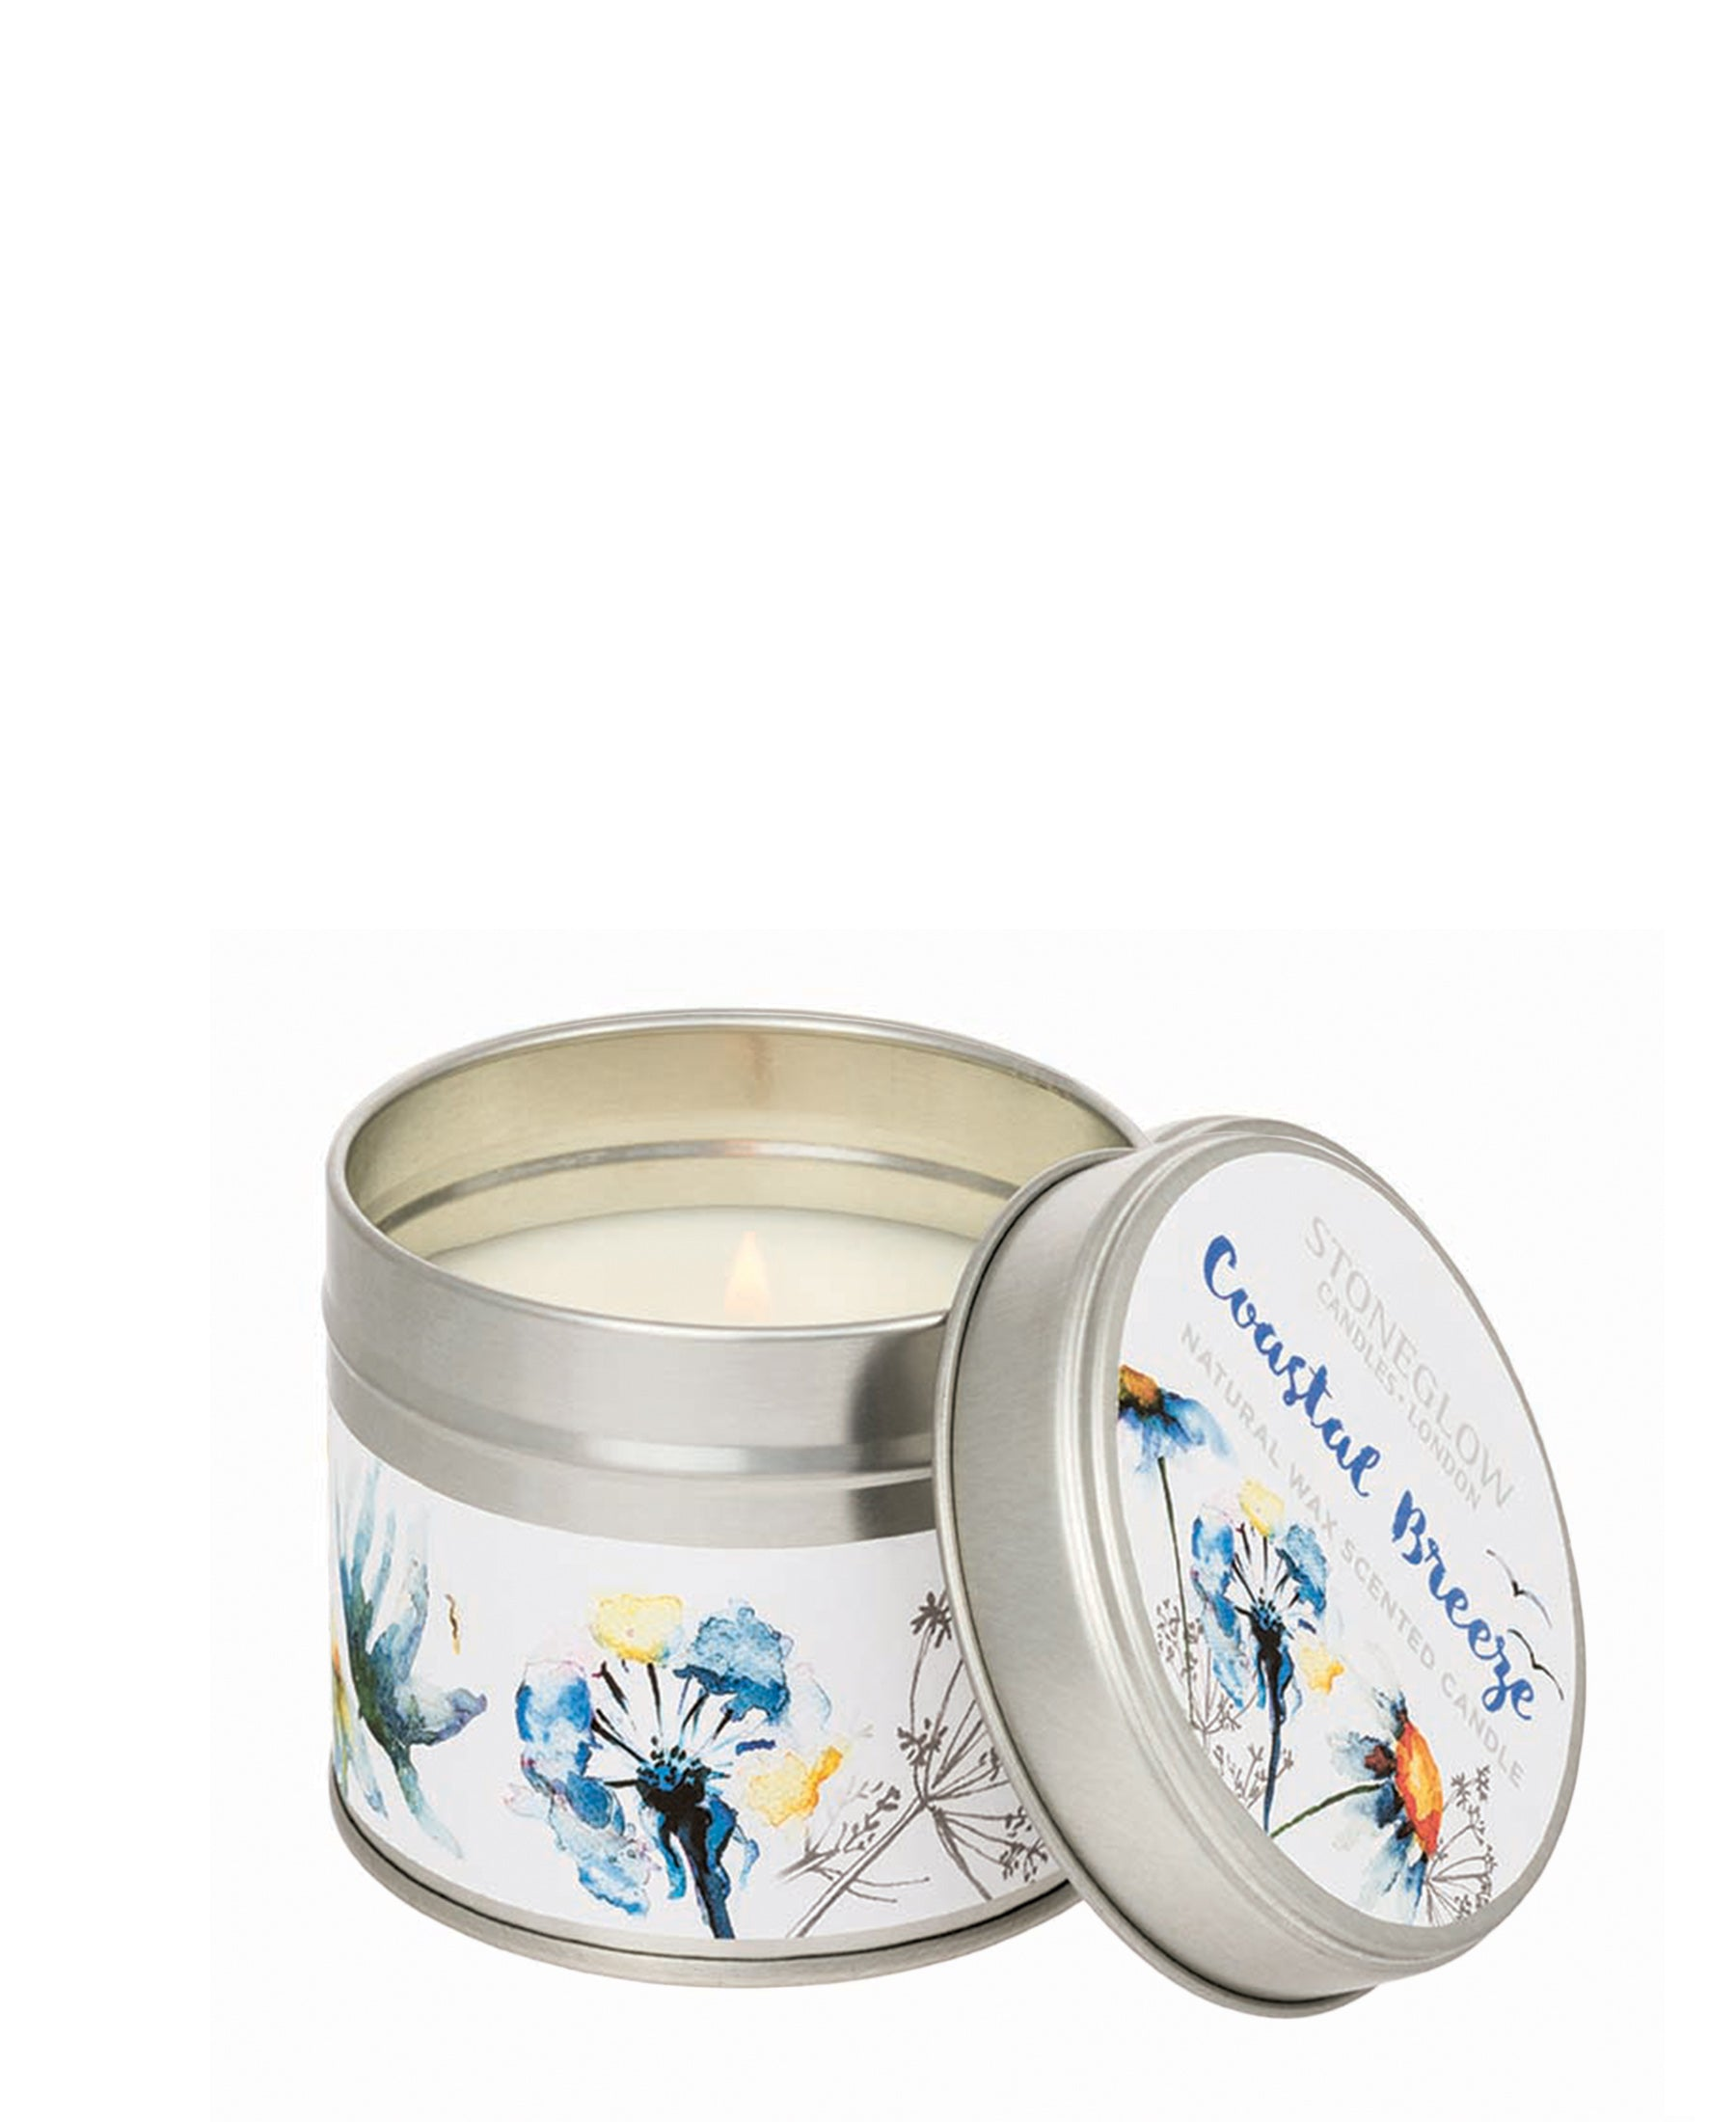 Stoneglow Coastal Breeze Candle Tin